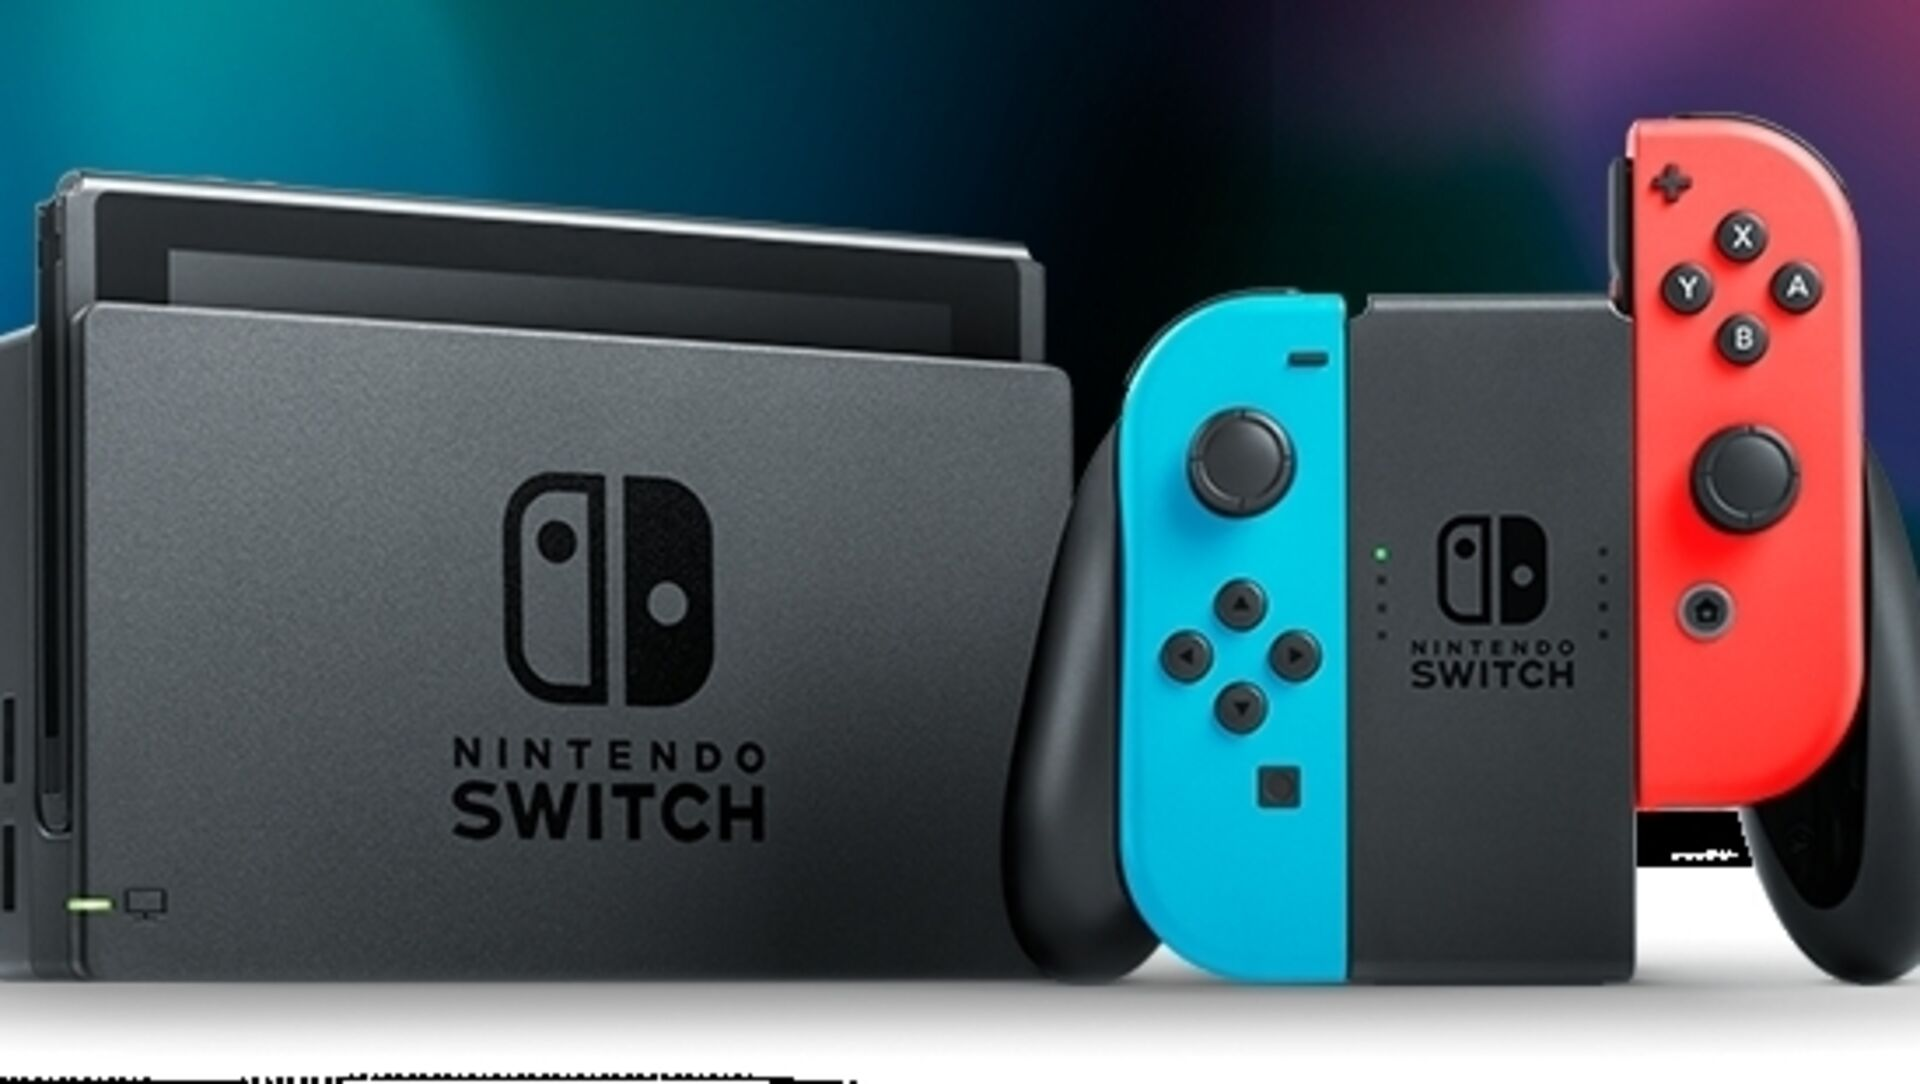 New Nintendo Switch announced, will have longer battery life